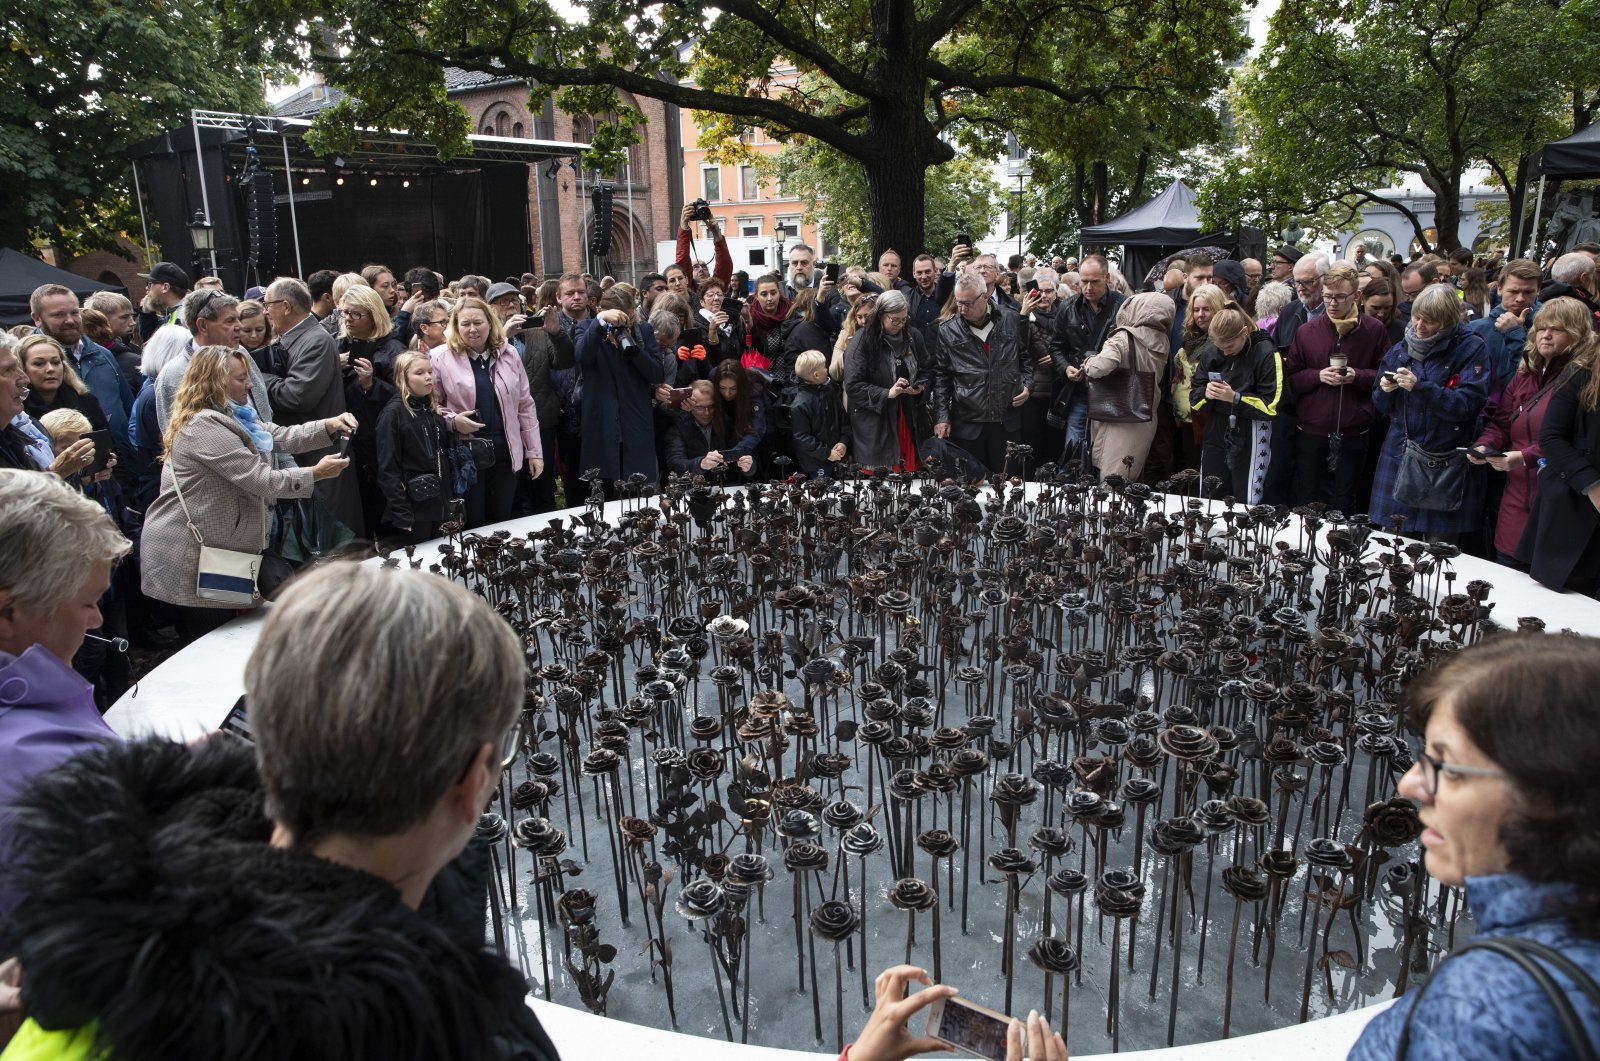 """People look at the """"Iron roses"""" memorial dedicated to 77 people who lost their lives to the 2011 terrorist attacks, in Oslo, Norway, Sept. 28, 2019. (AP Photo)"""